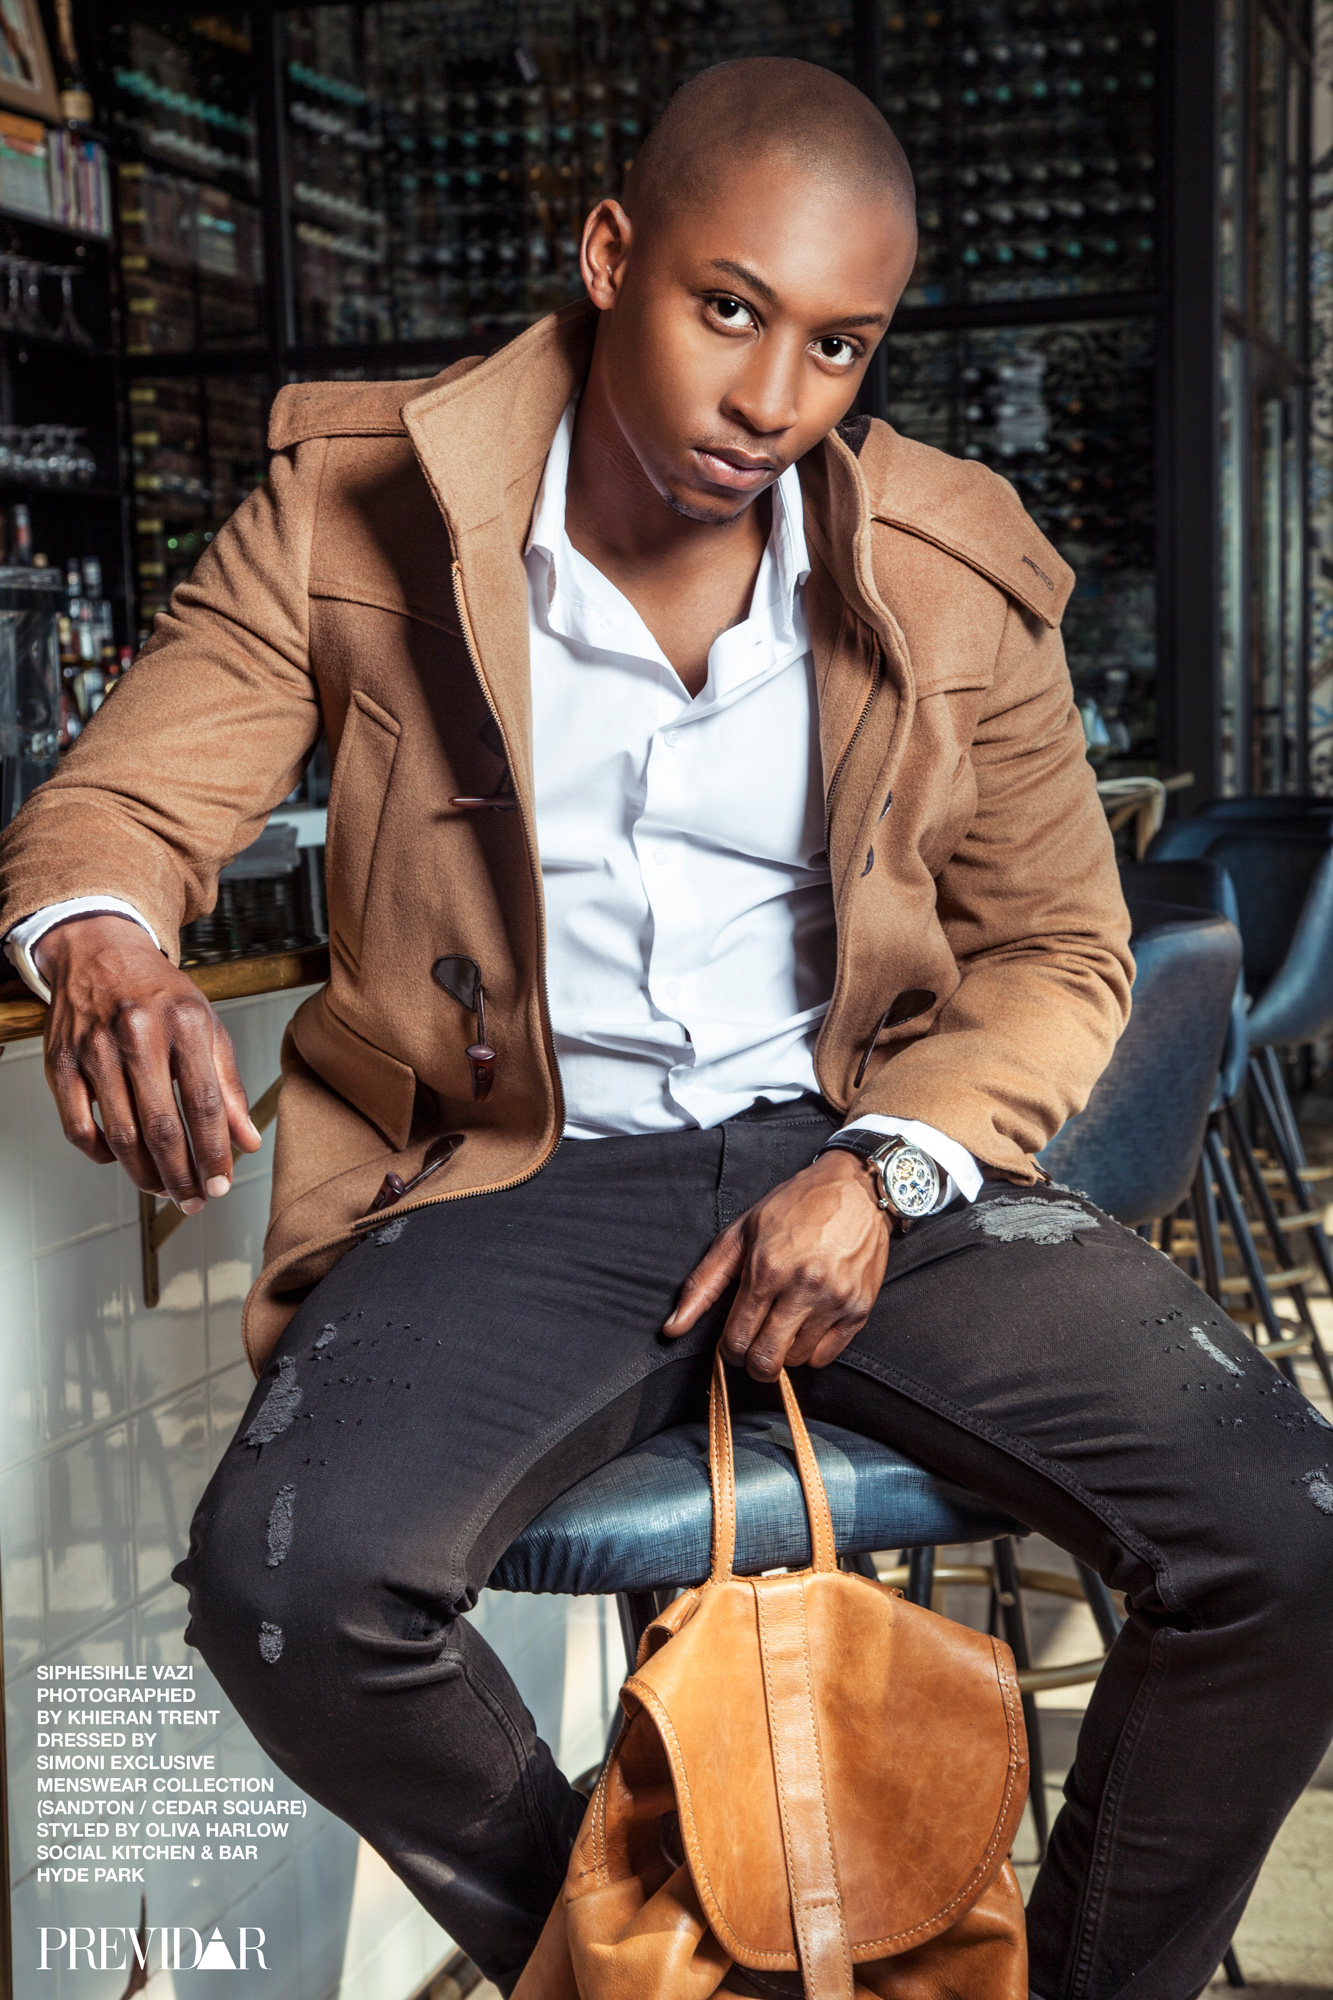 #PrevidarCareers: Siphisihle Vazi, 2 Piece Suit by SIMONI Exclusive Menswear Collection (Sandton). Photo by Kieran Trent